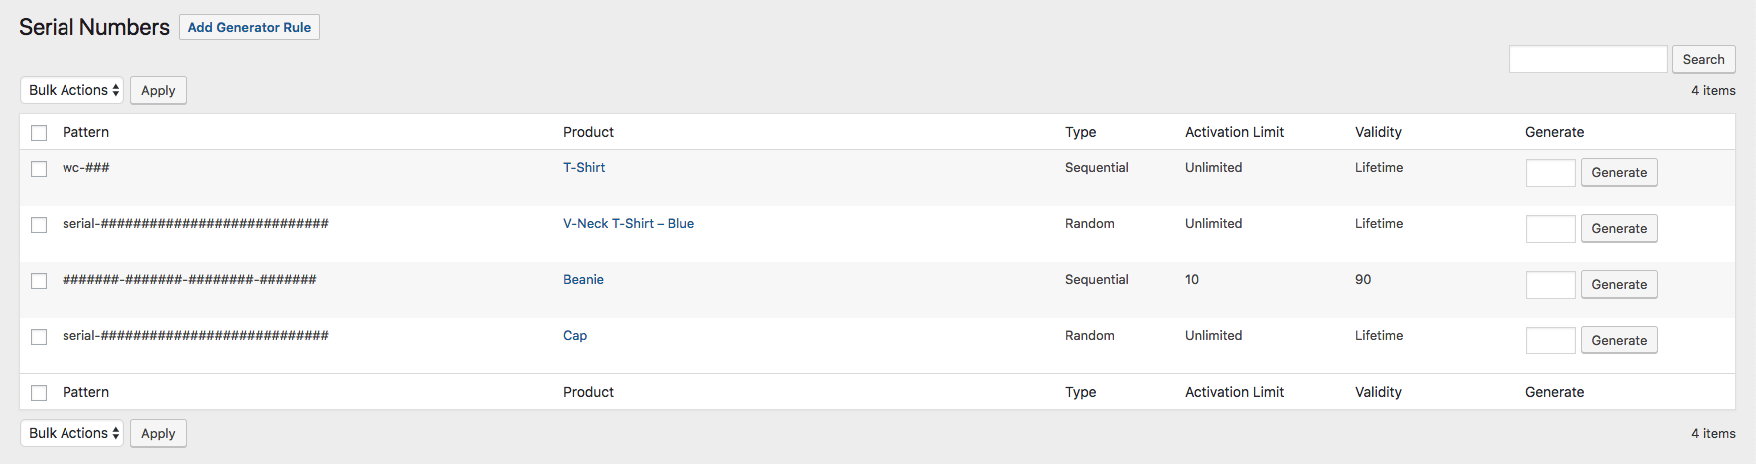 You can generate bulk serial numbers from a custom pattern